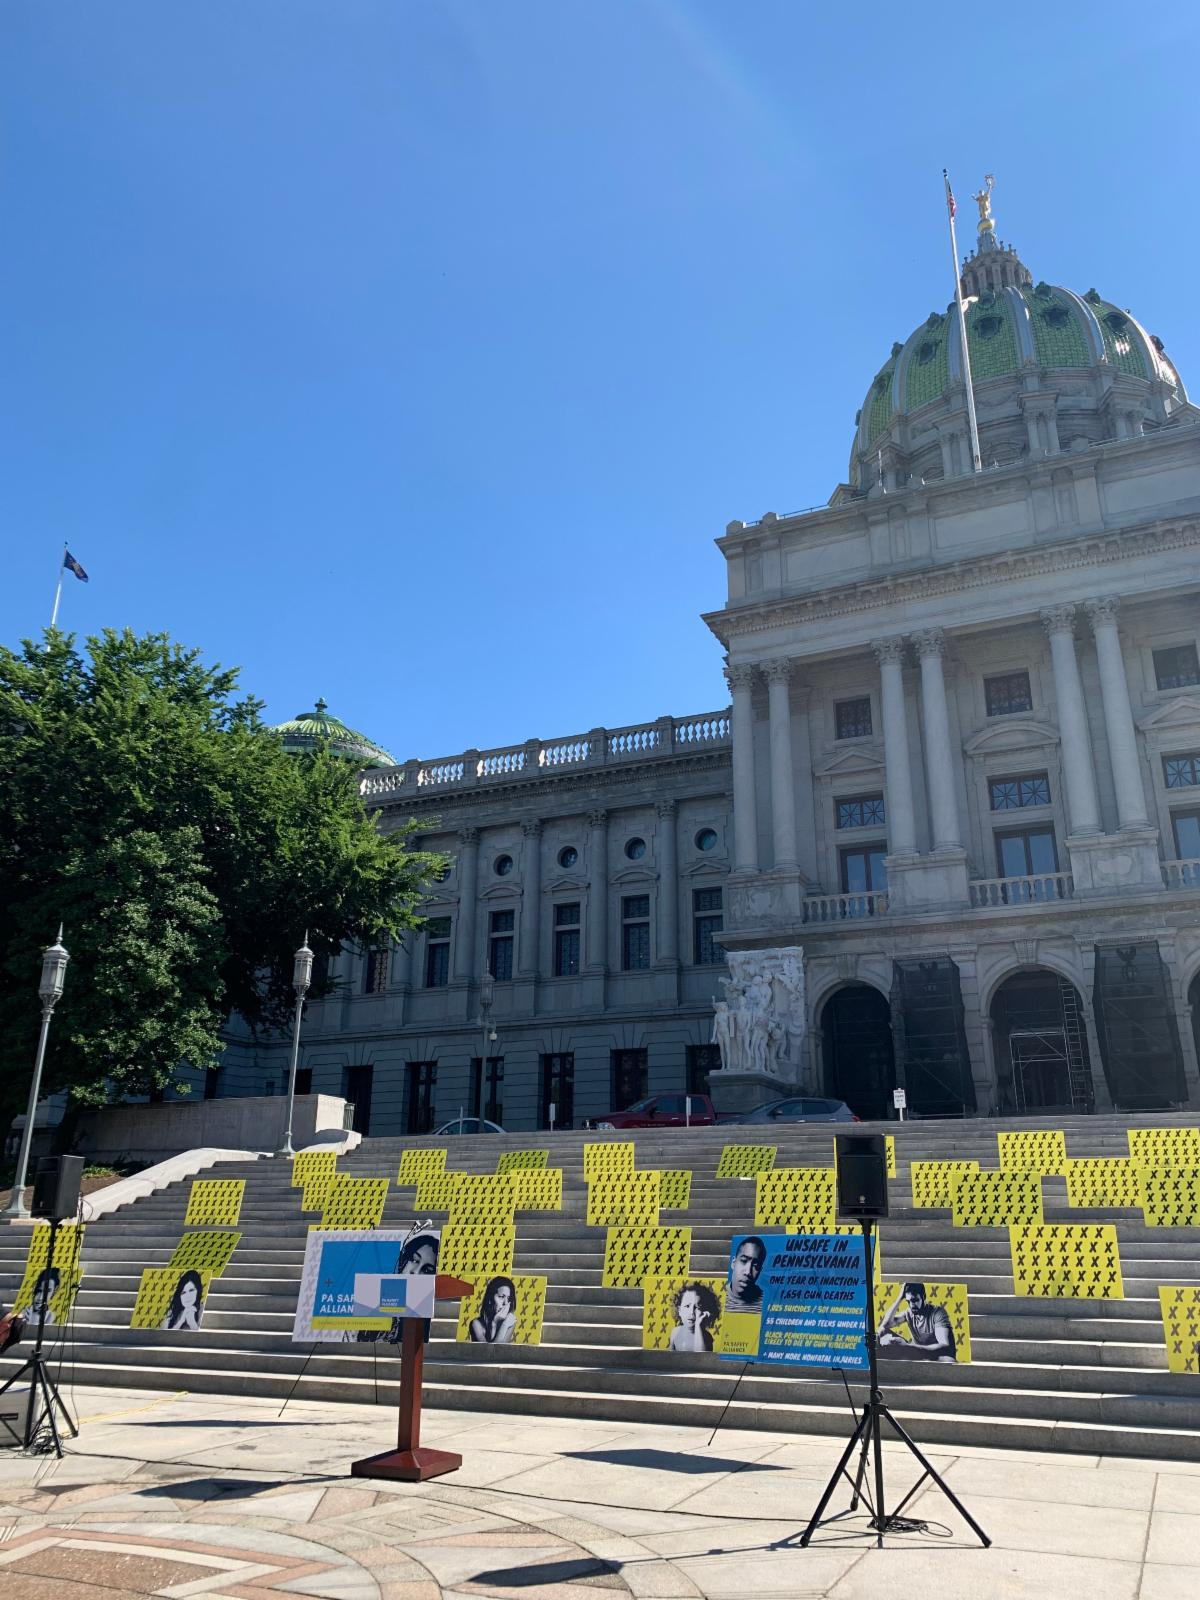 The launch of the PA Safety Alliance in Harrisburg. Each x represents a Pennsylvanian lost to gun violence.